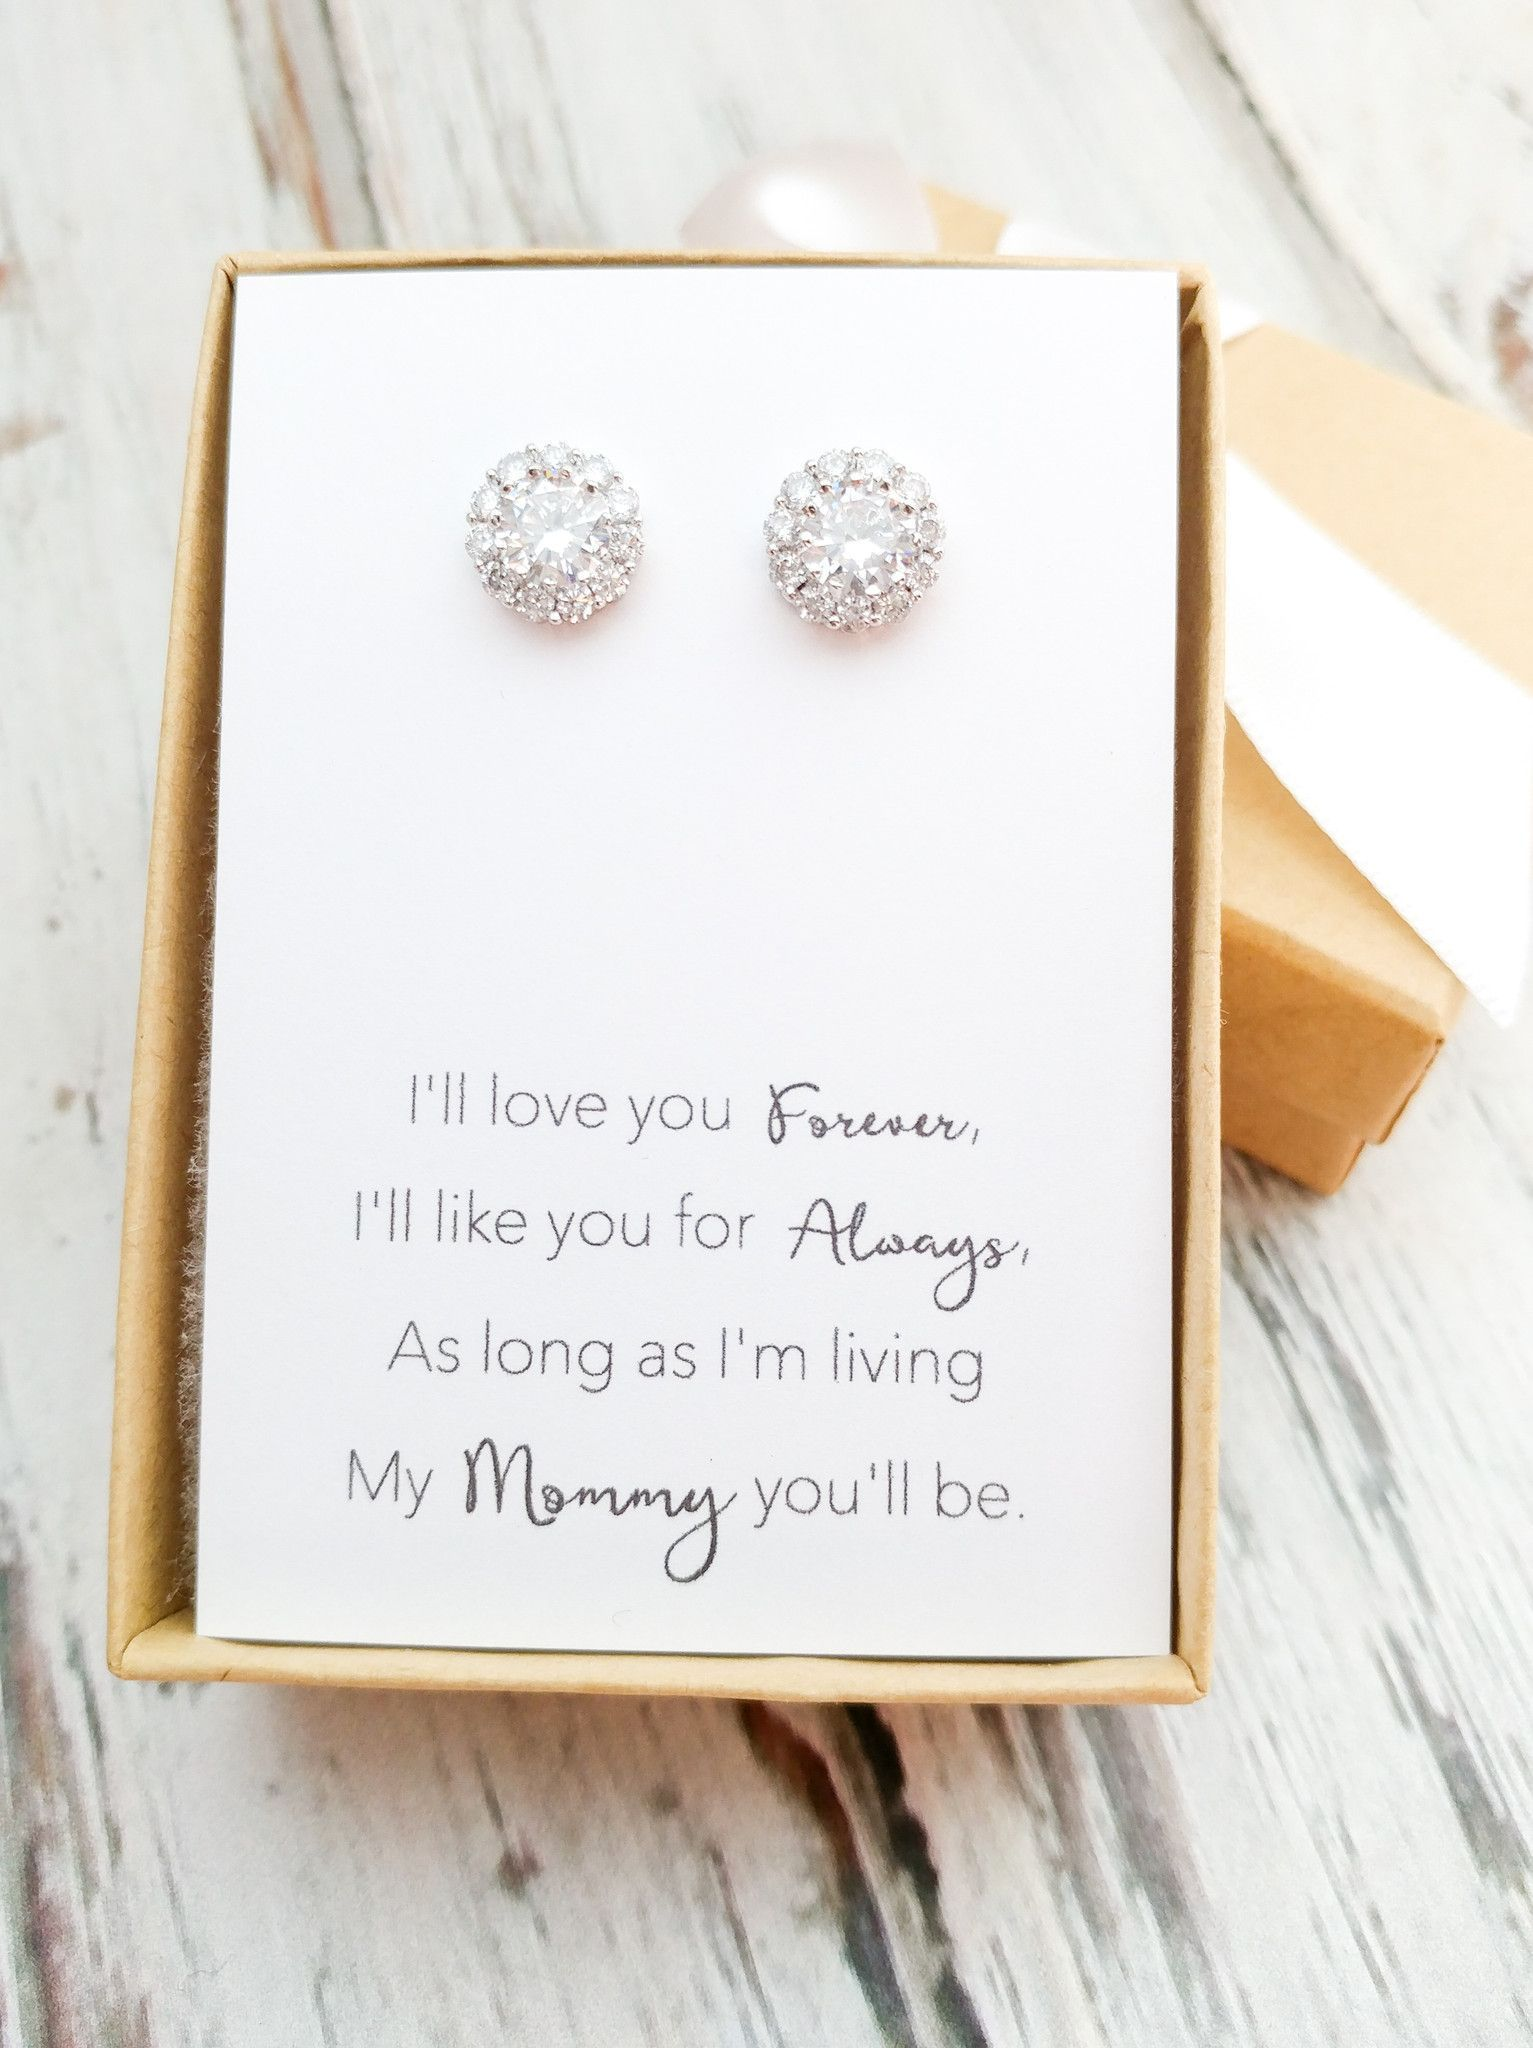 Mother of the Bride Gift - Wedding Ideas | Cubic zirconia earrings ...